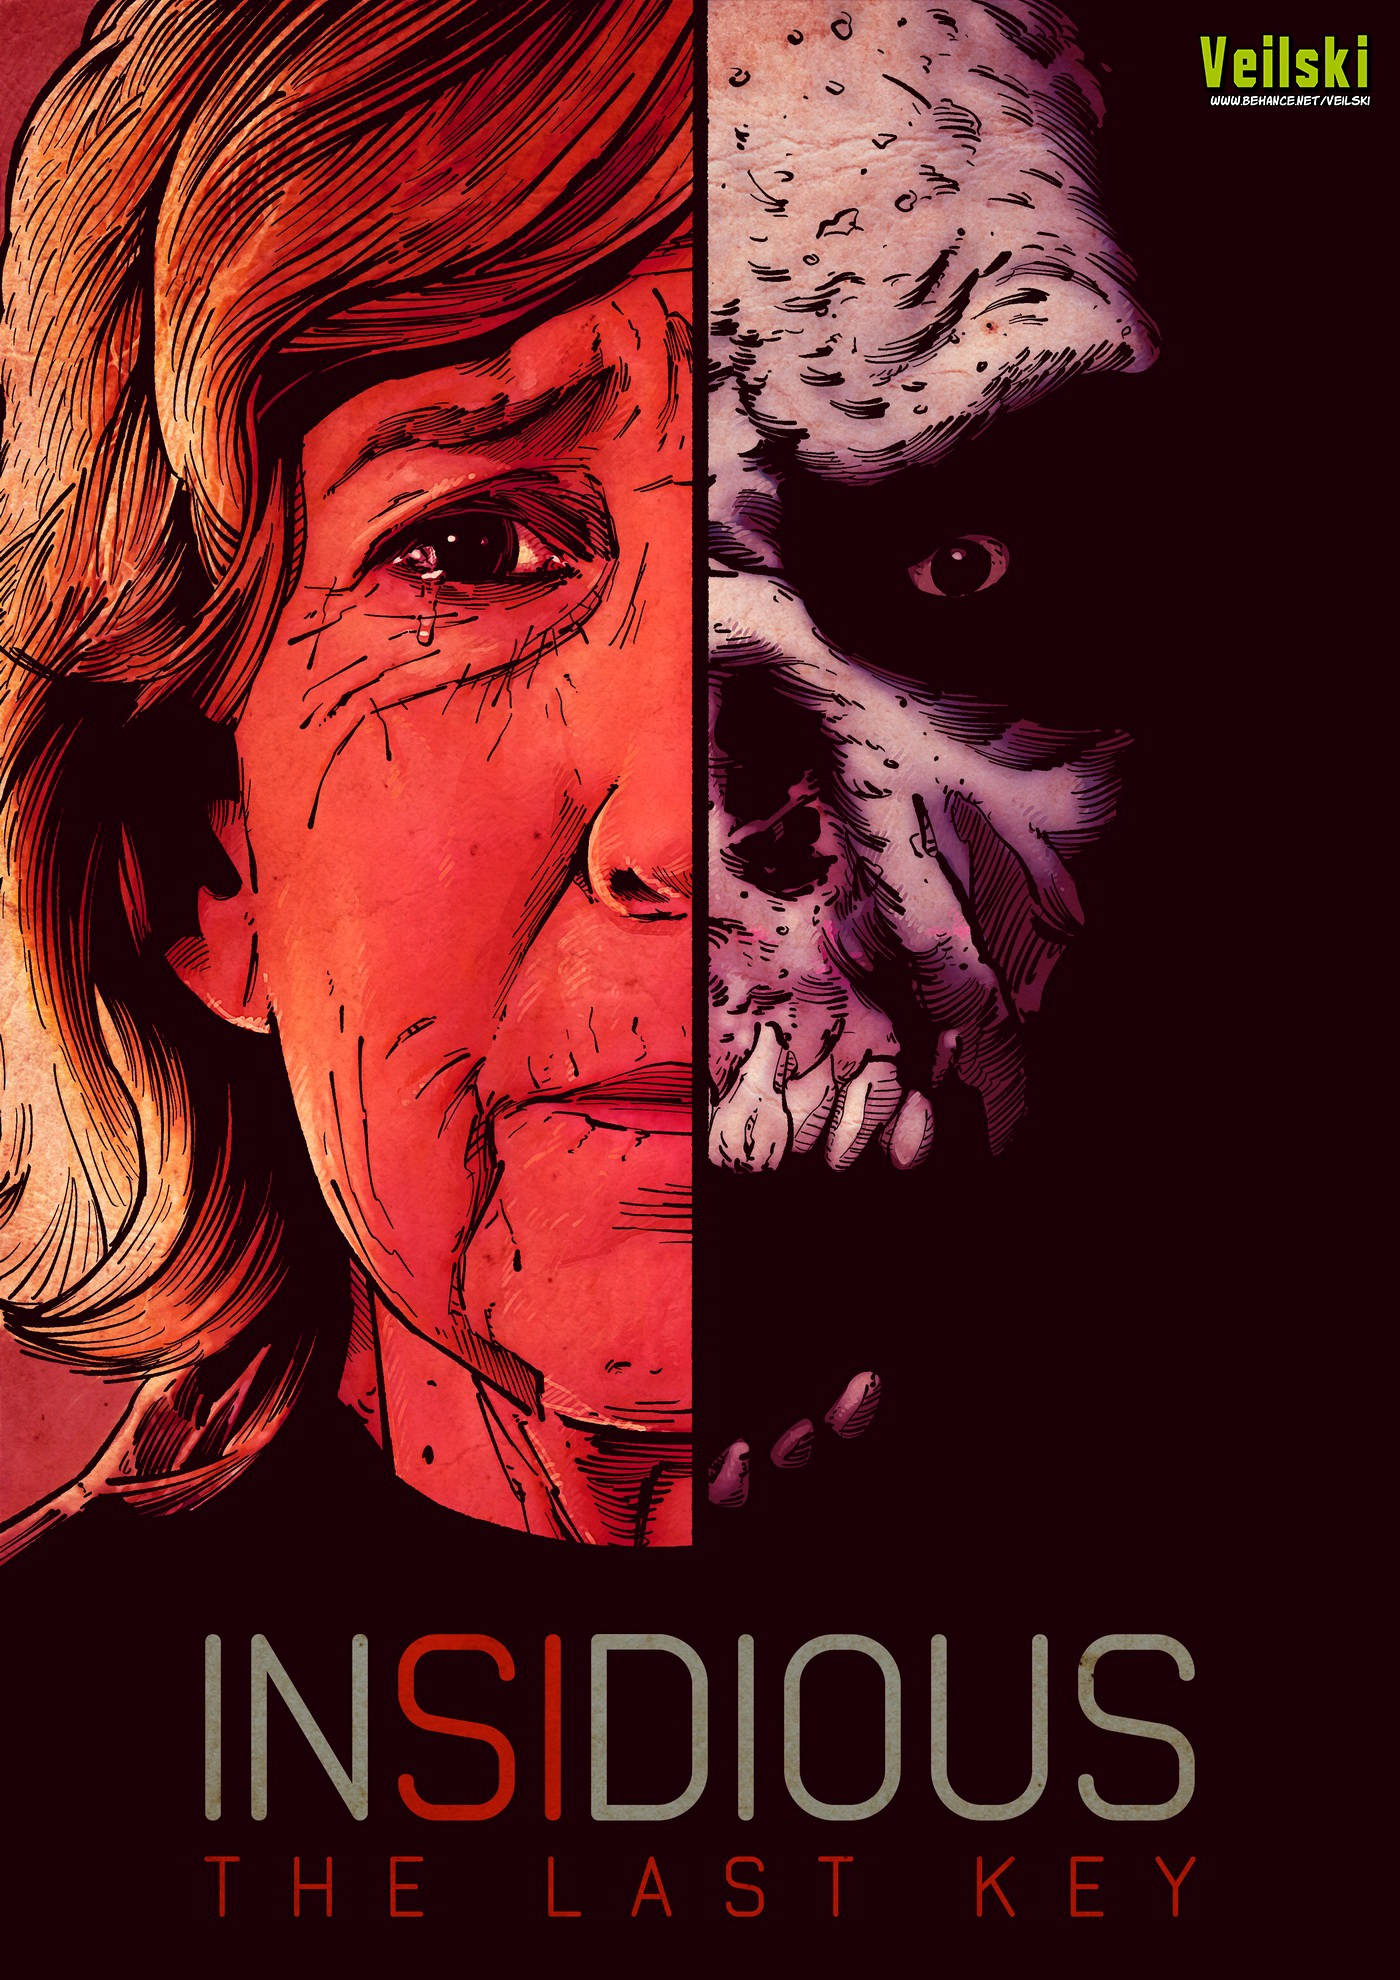 Insidious: The Last Key Posters on Behance